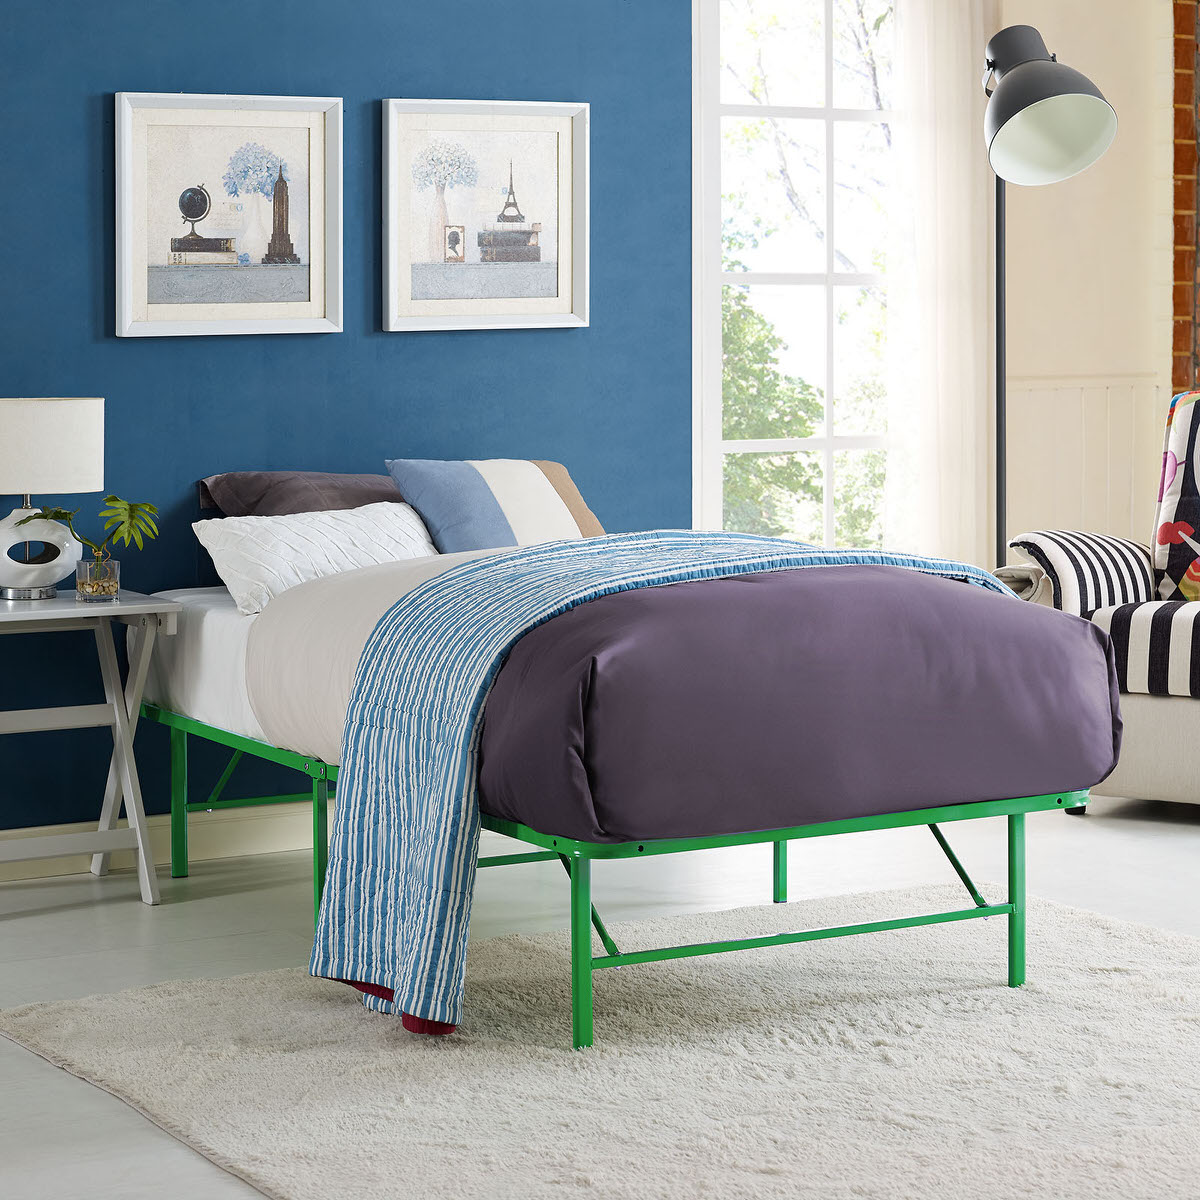 Horizon Twin Stainless Steel Bed Frame Green by Modern Living